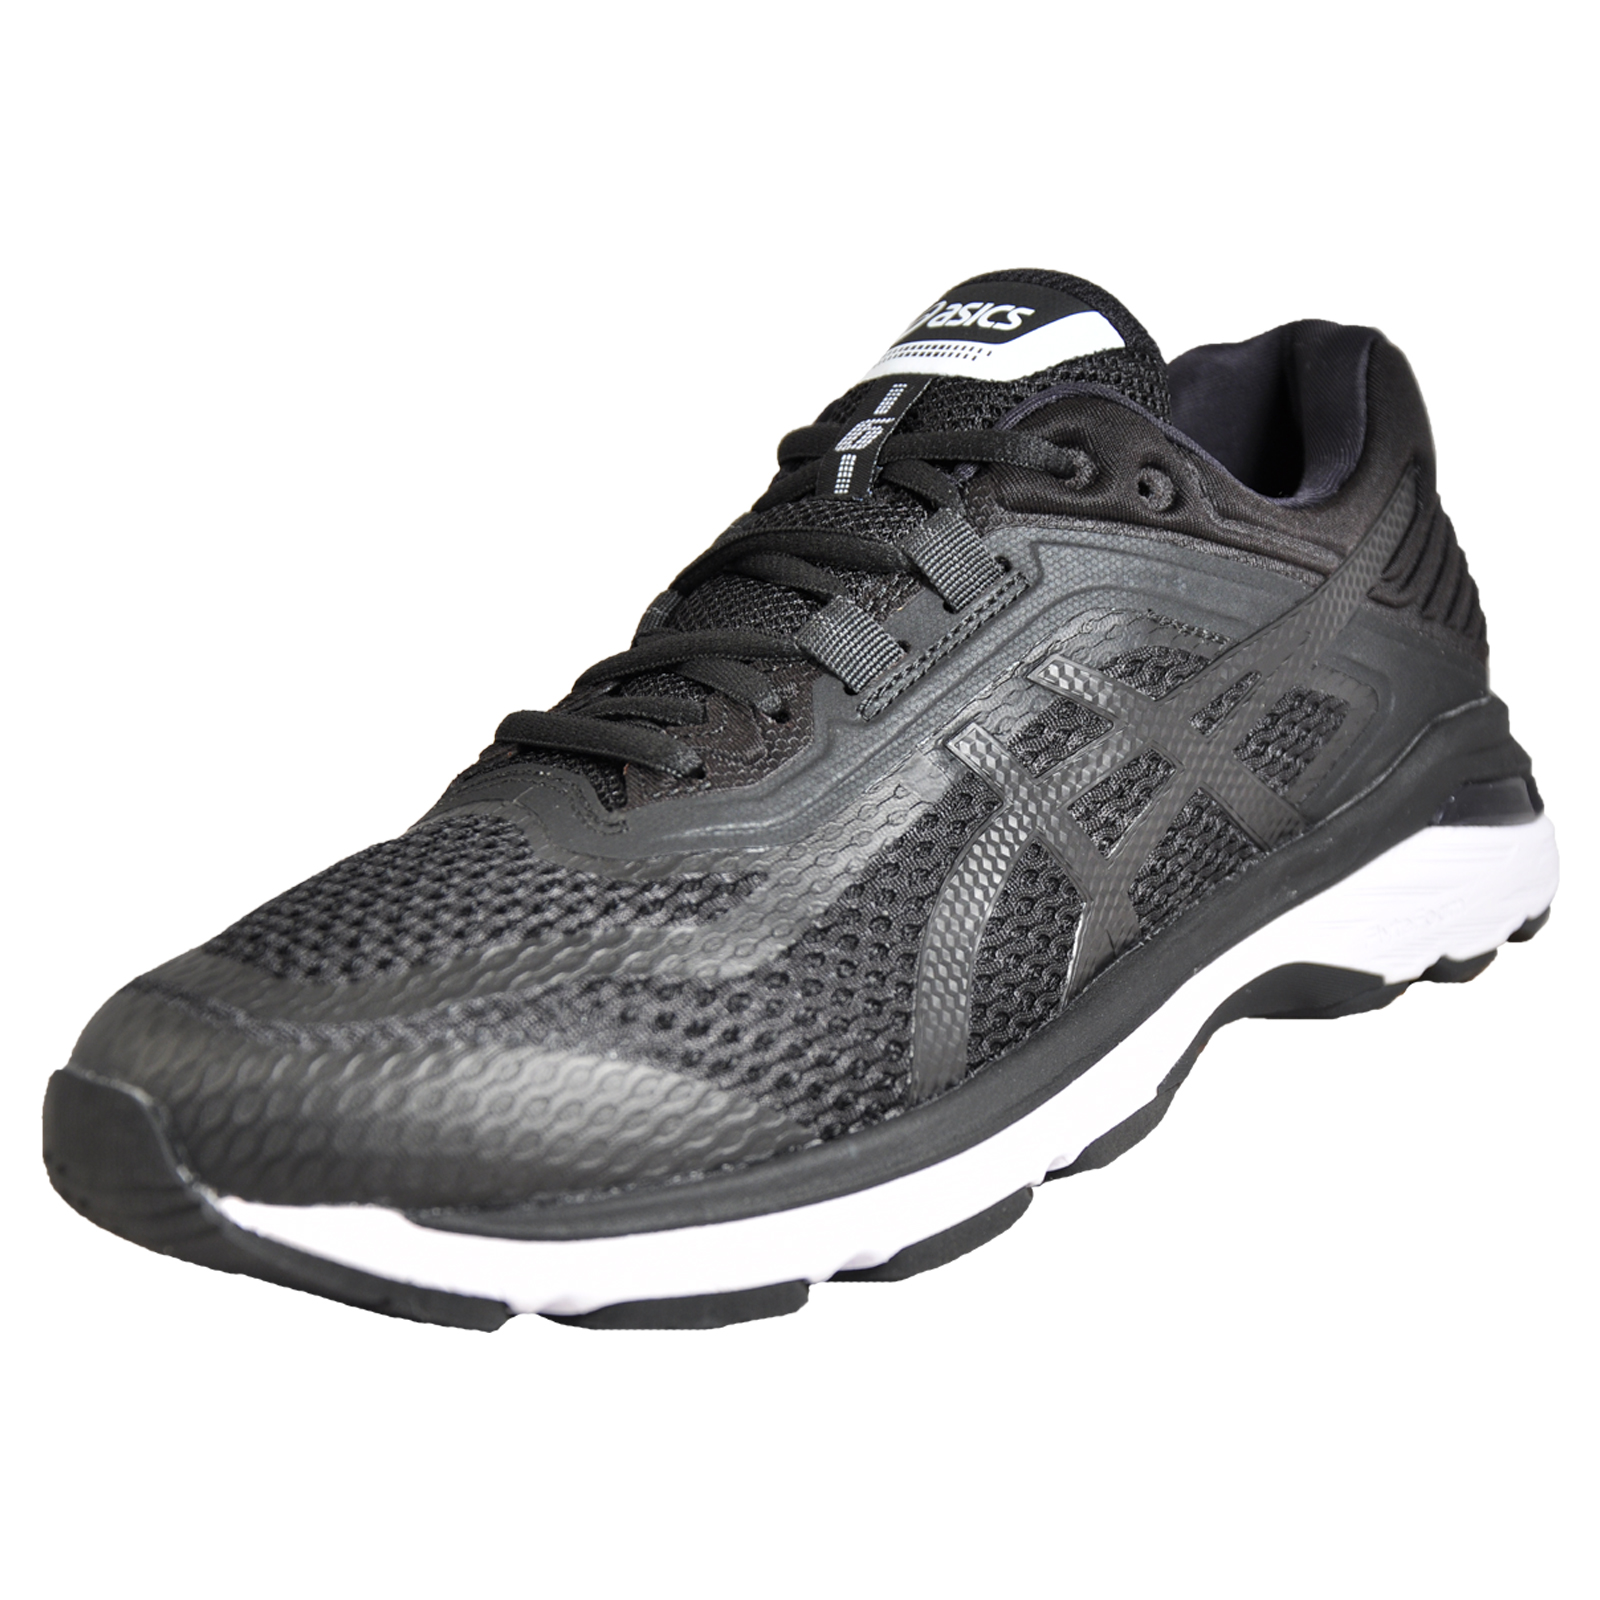 pretty nice 7107a 741c6 Details about Asics GT-2000 6 Men s Premium Running Shoes Gym Fitness  Trainers Black